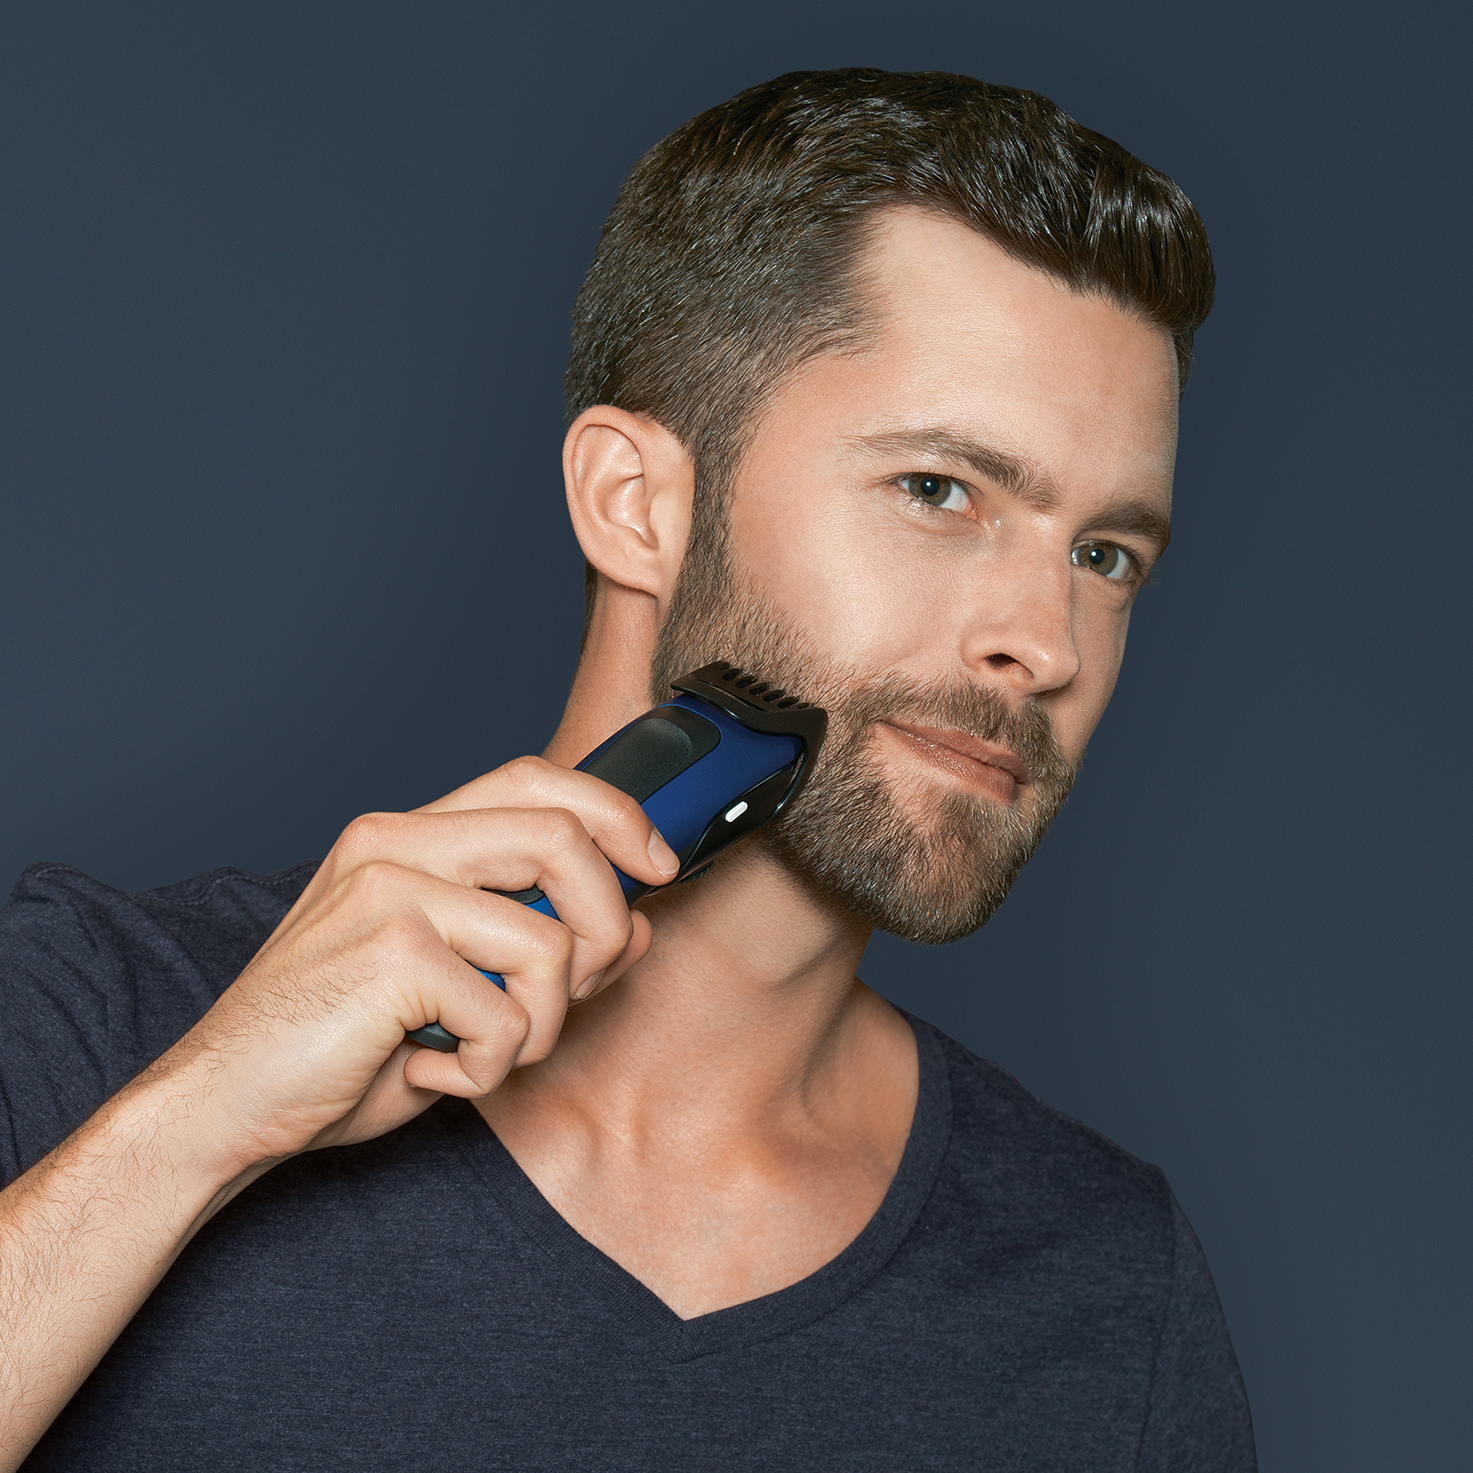 Braun beard trimmer BT5050